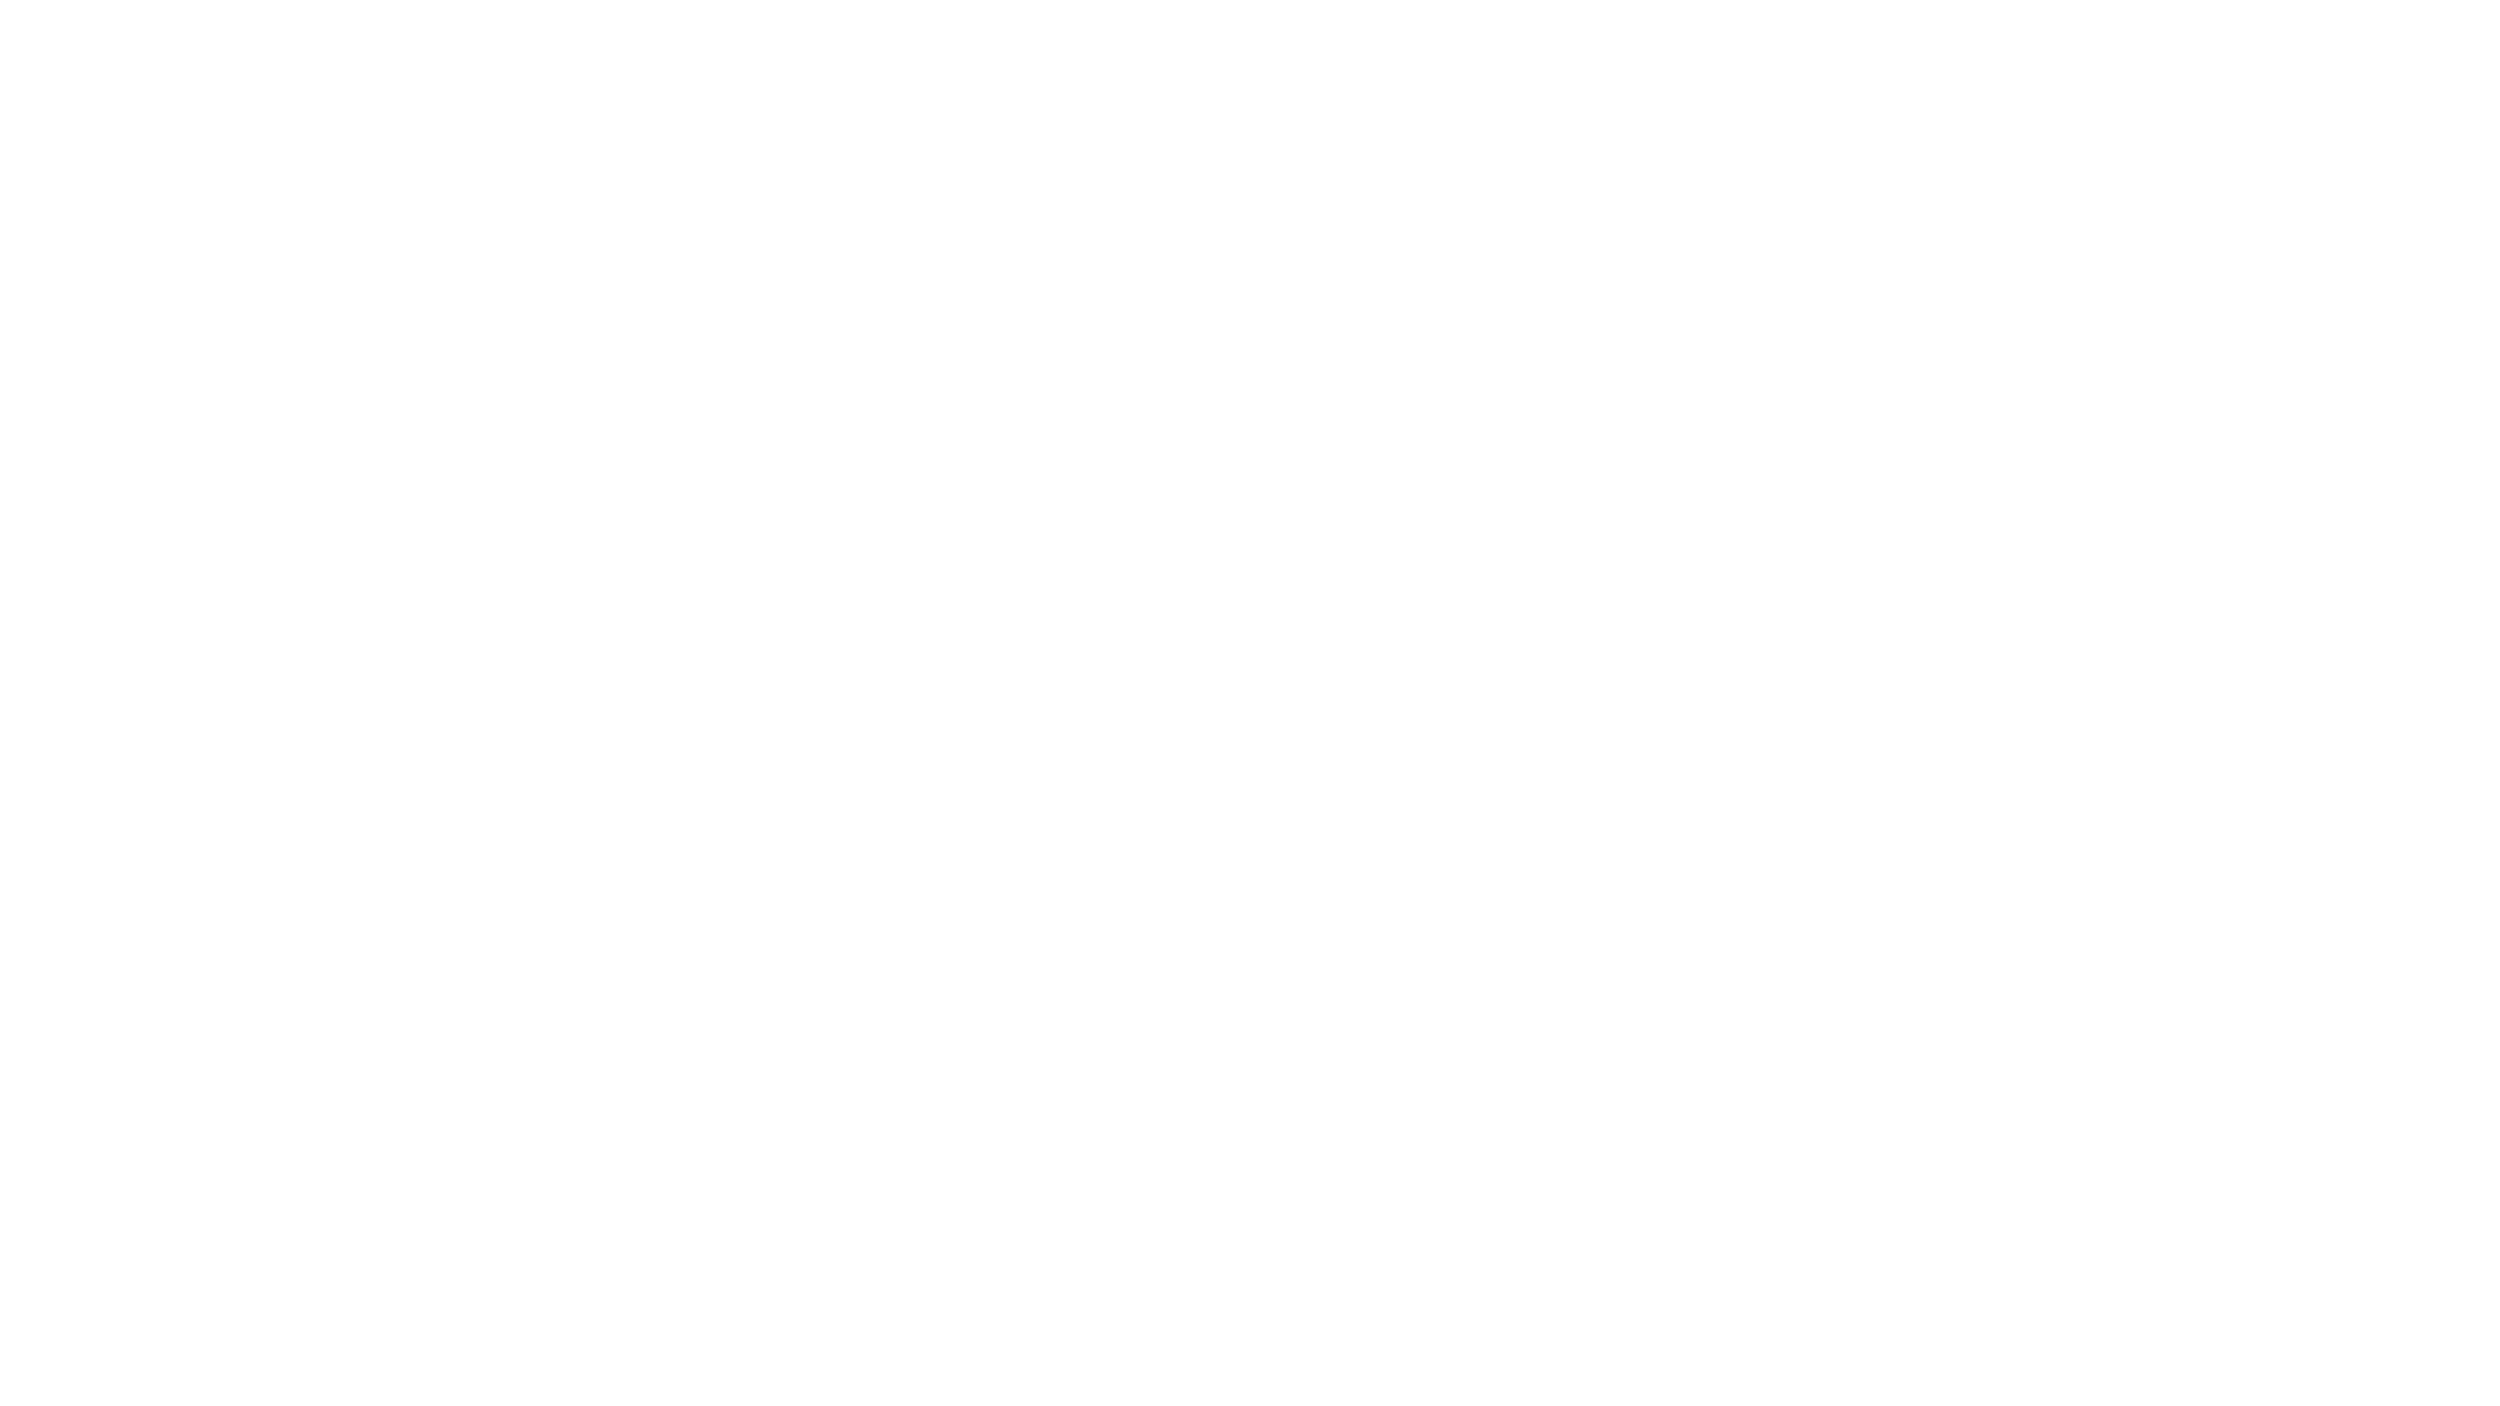 Hosted by - Our friends at the D'Addario Education Collective.Thank you!